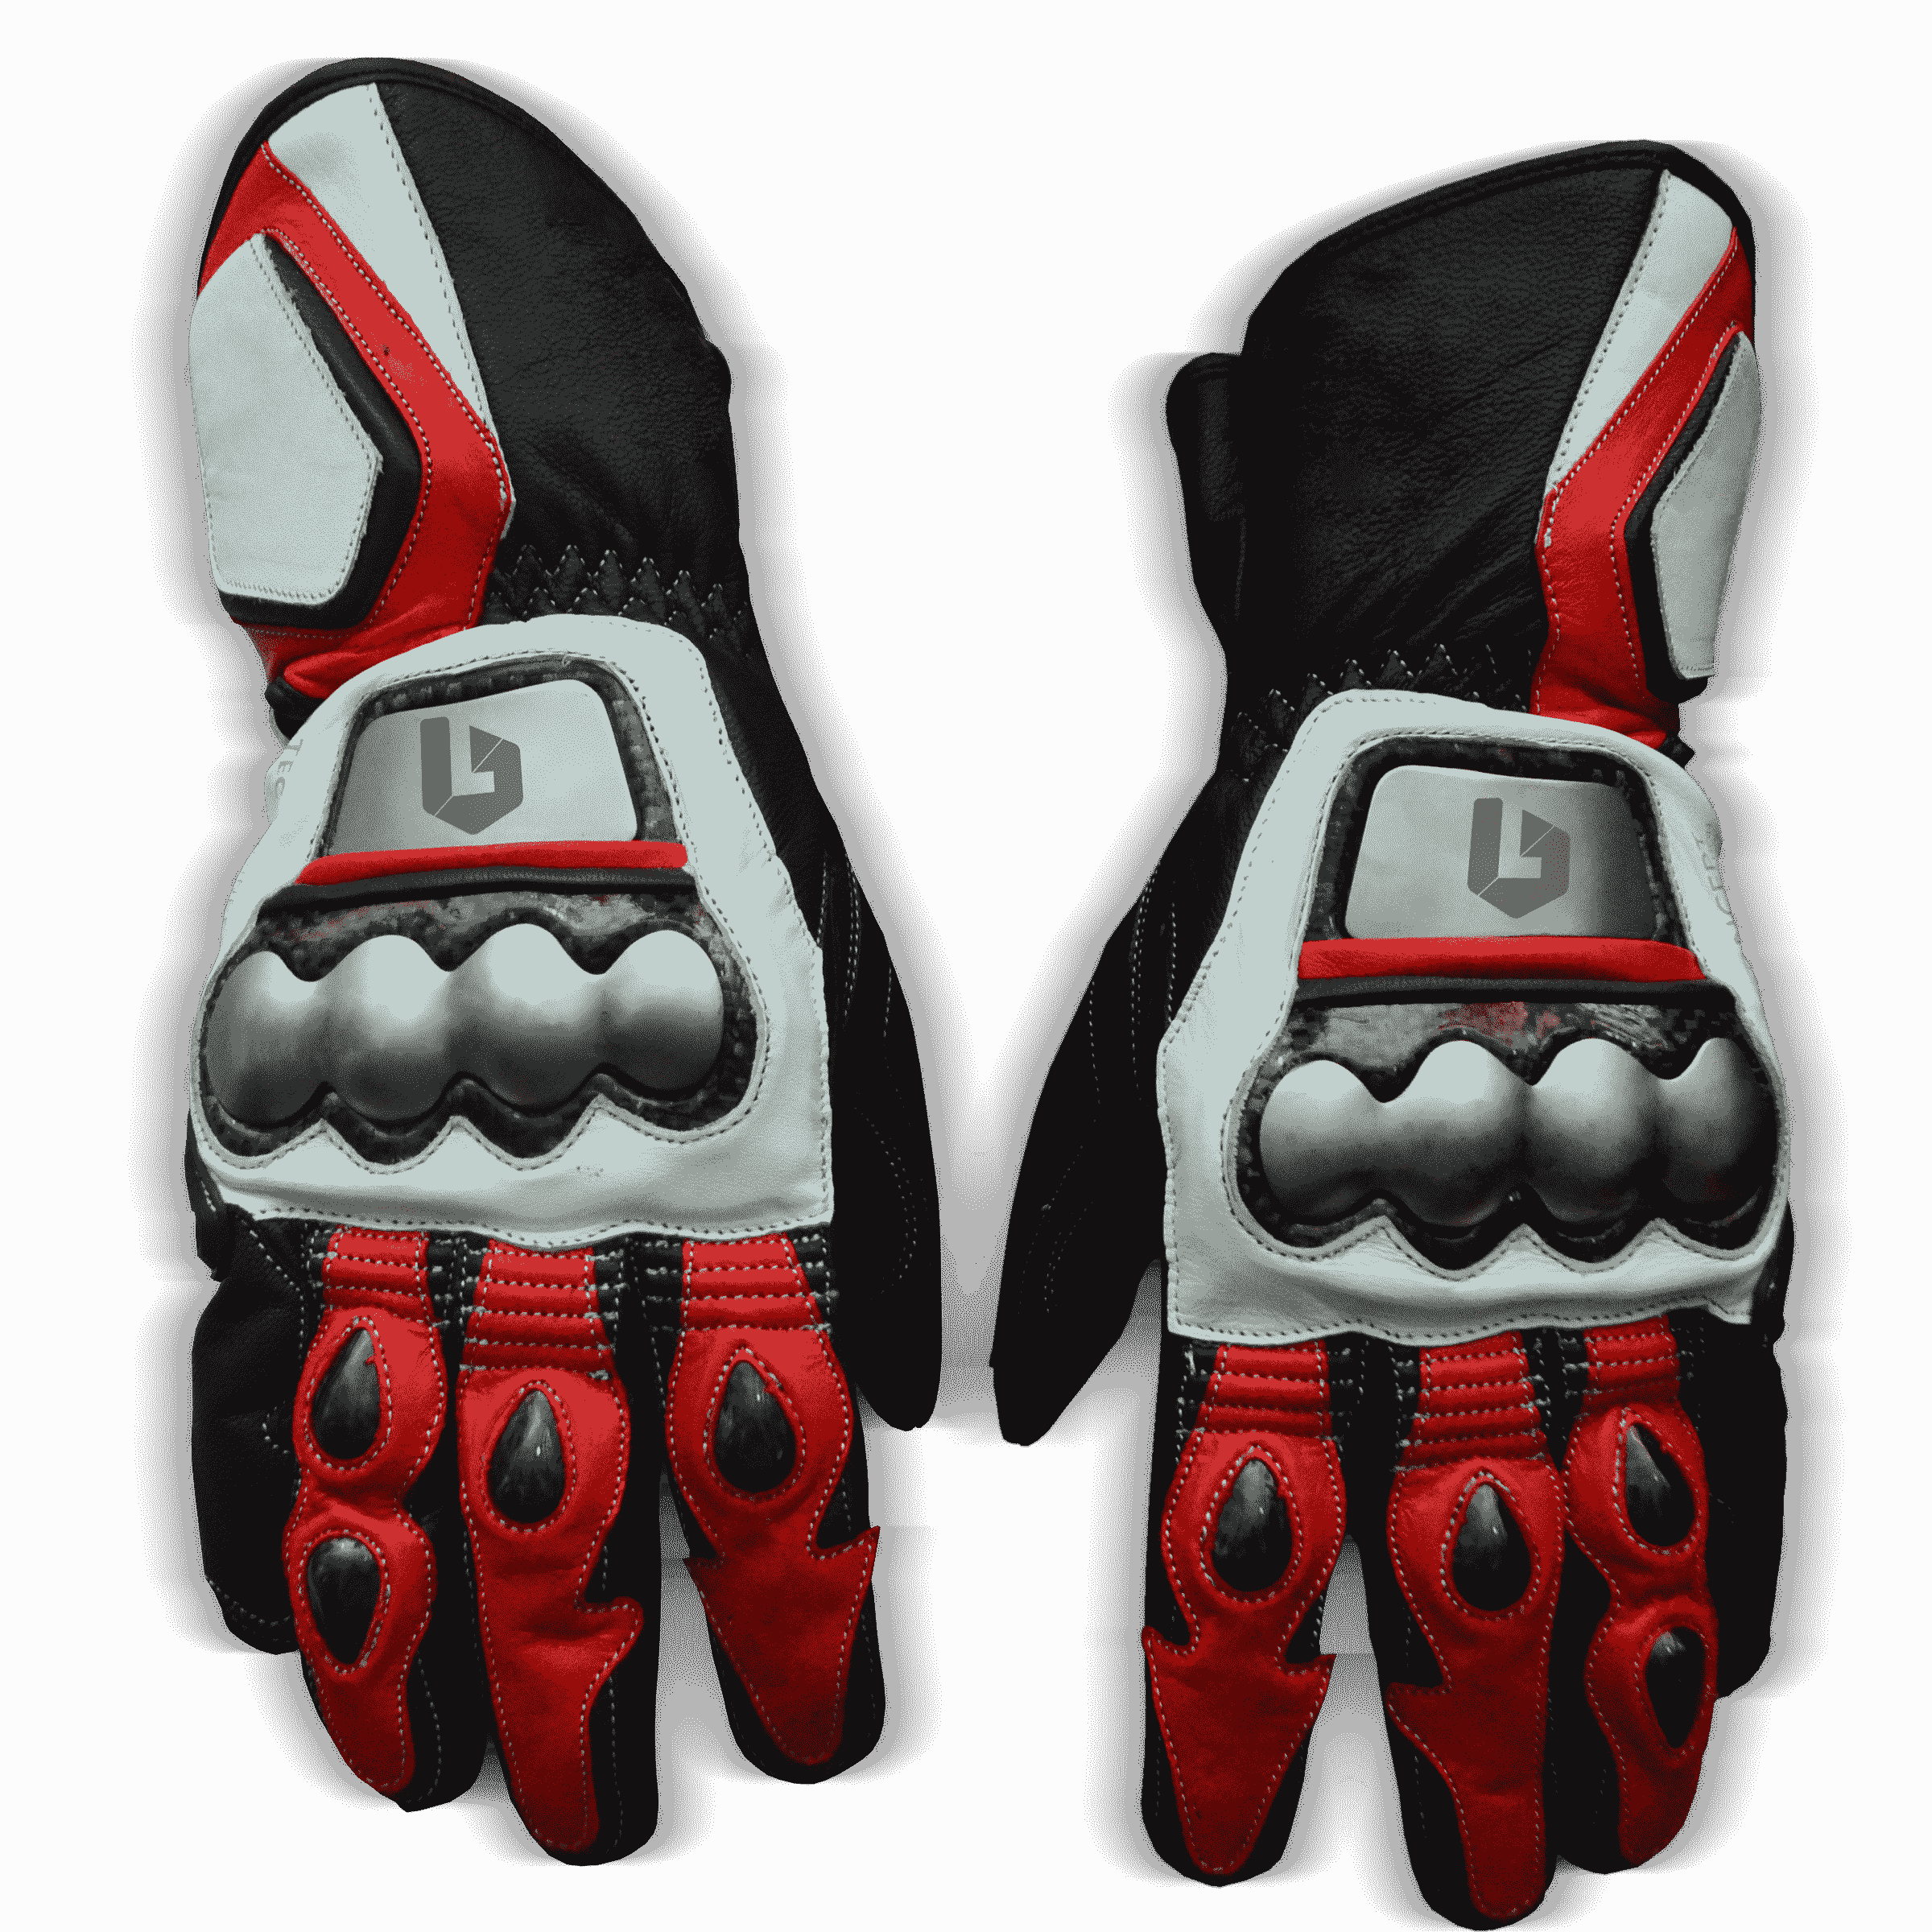 Ducati-Motorbike-Racing-Leather-Gloves